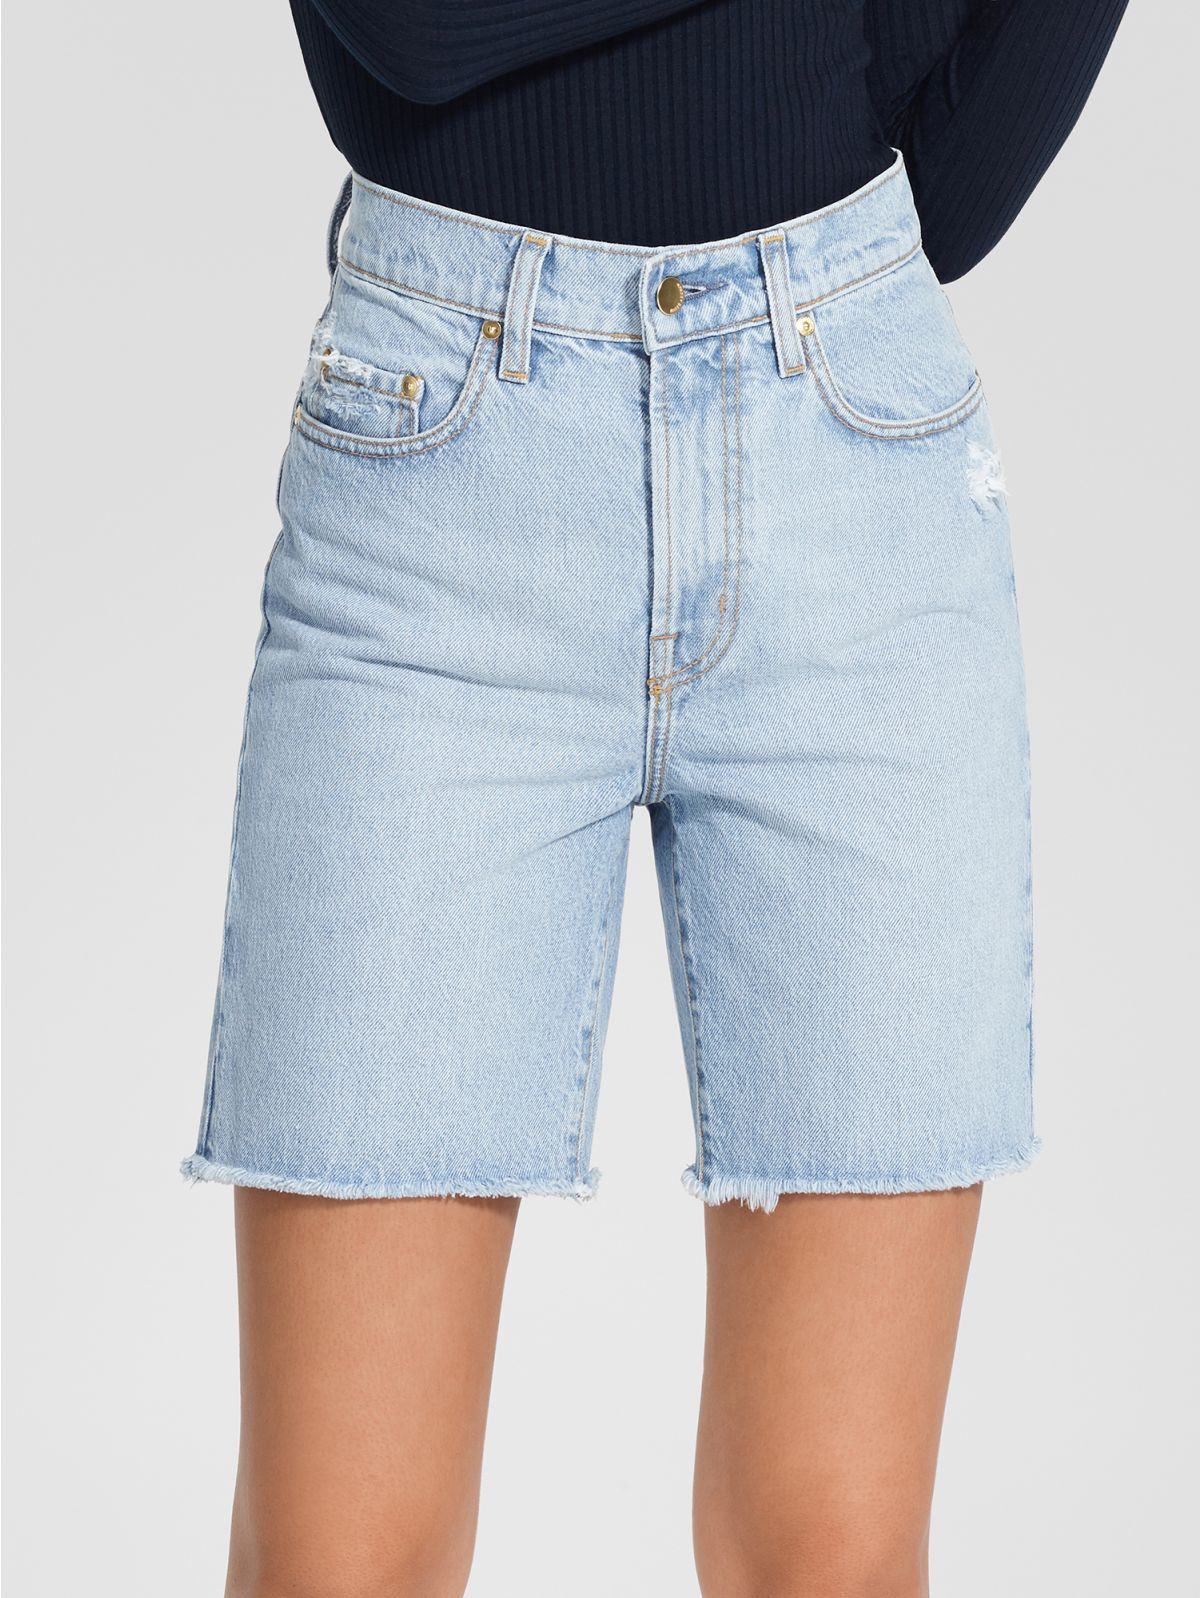 NOBODY DENIM TYLER SHORT - FLAIR